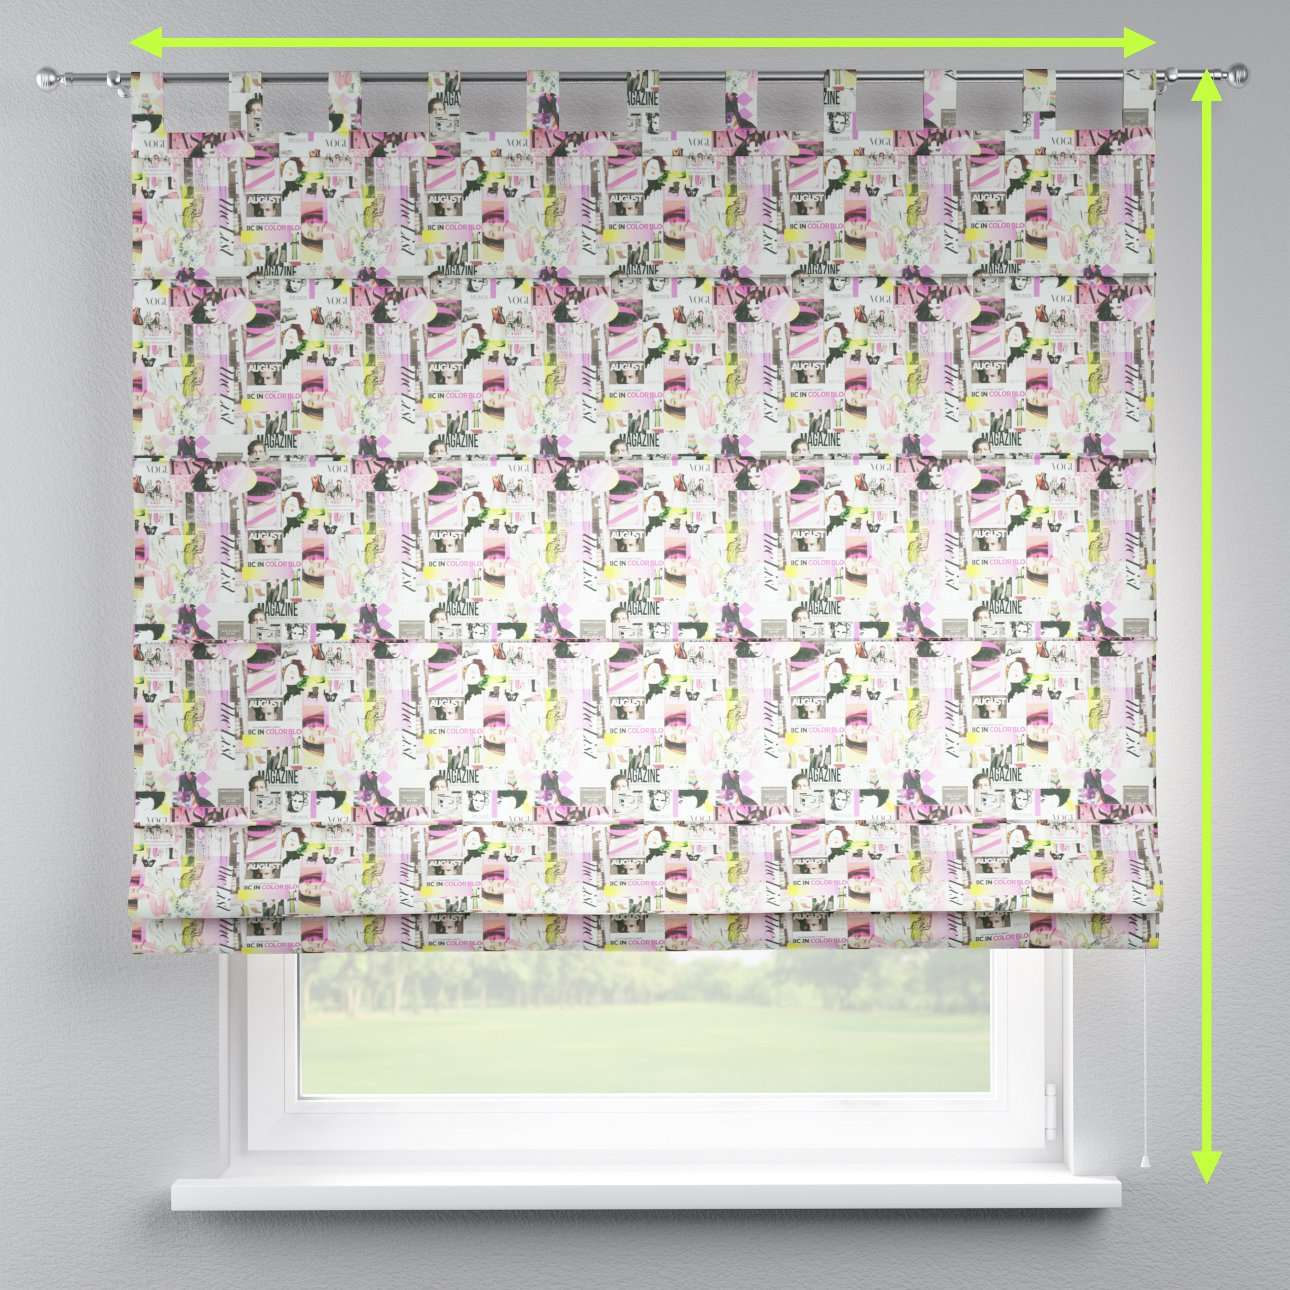 Verona tab top roman blind in collection Freestyle, fabric: 135-15